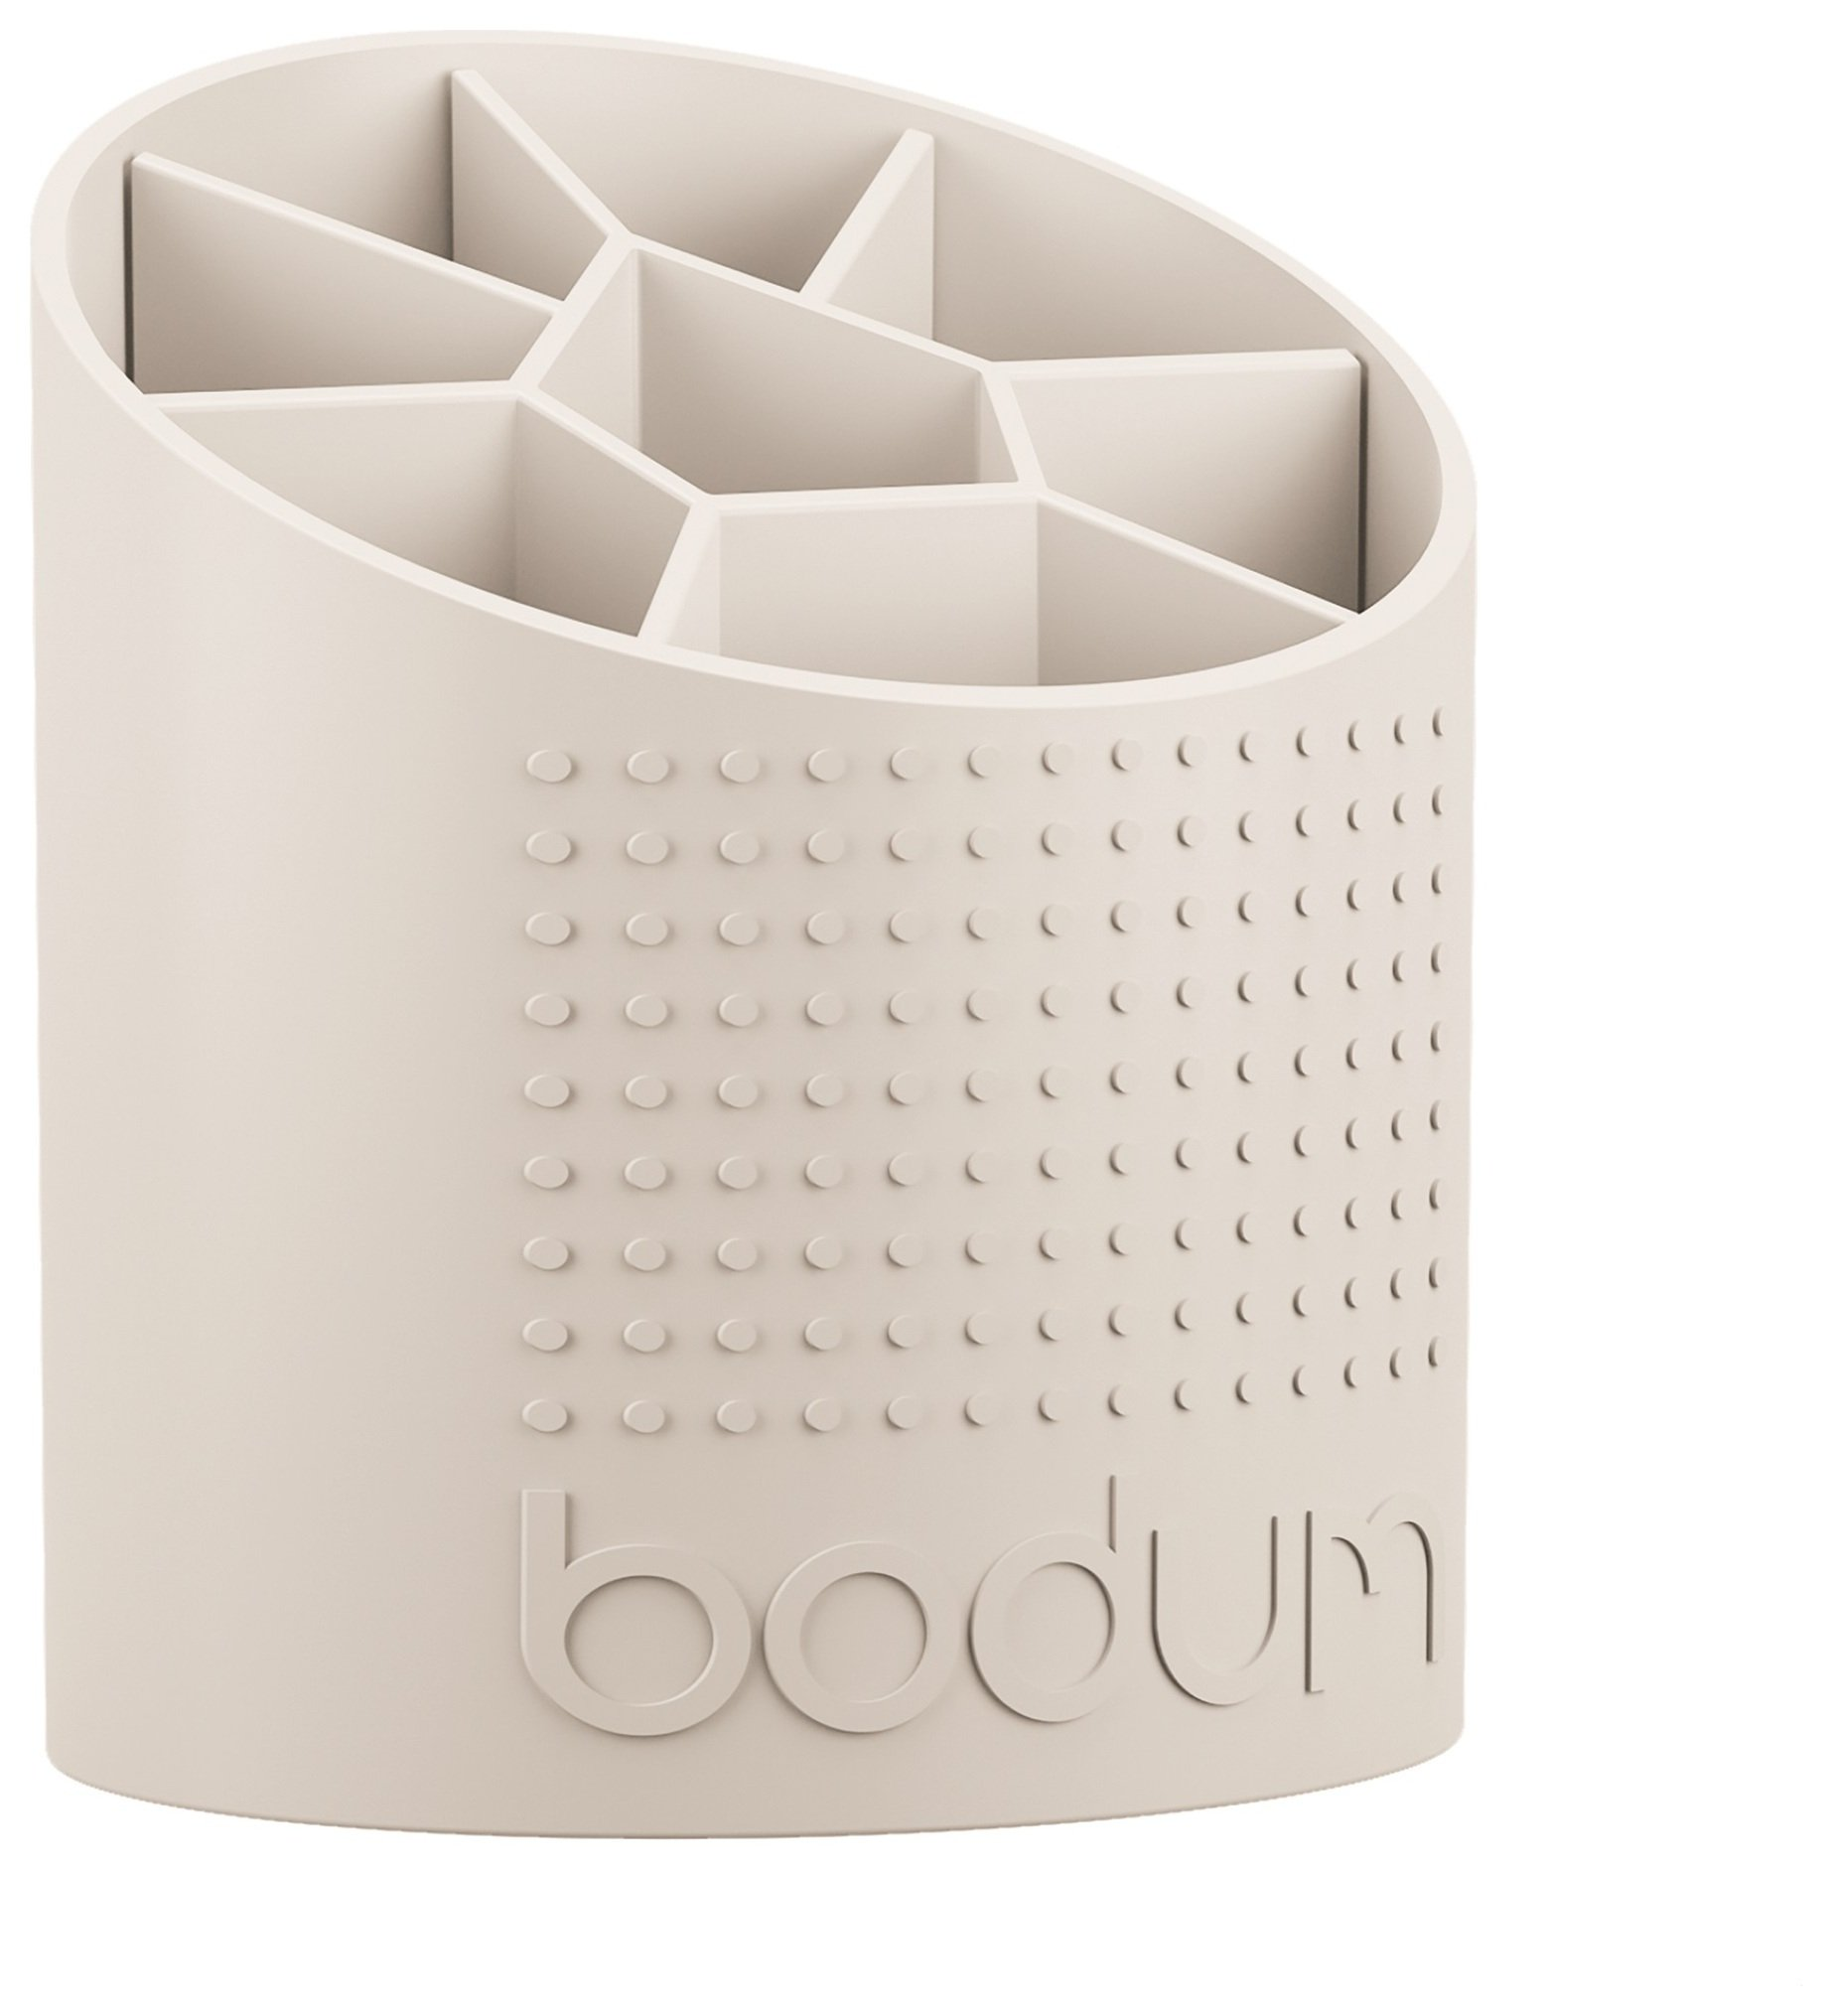 Image of Bodum Bistro Utensil Holder - White